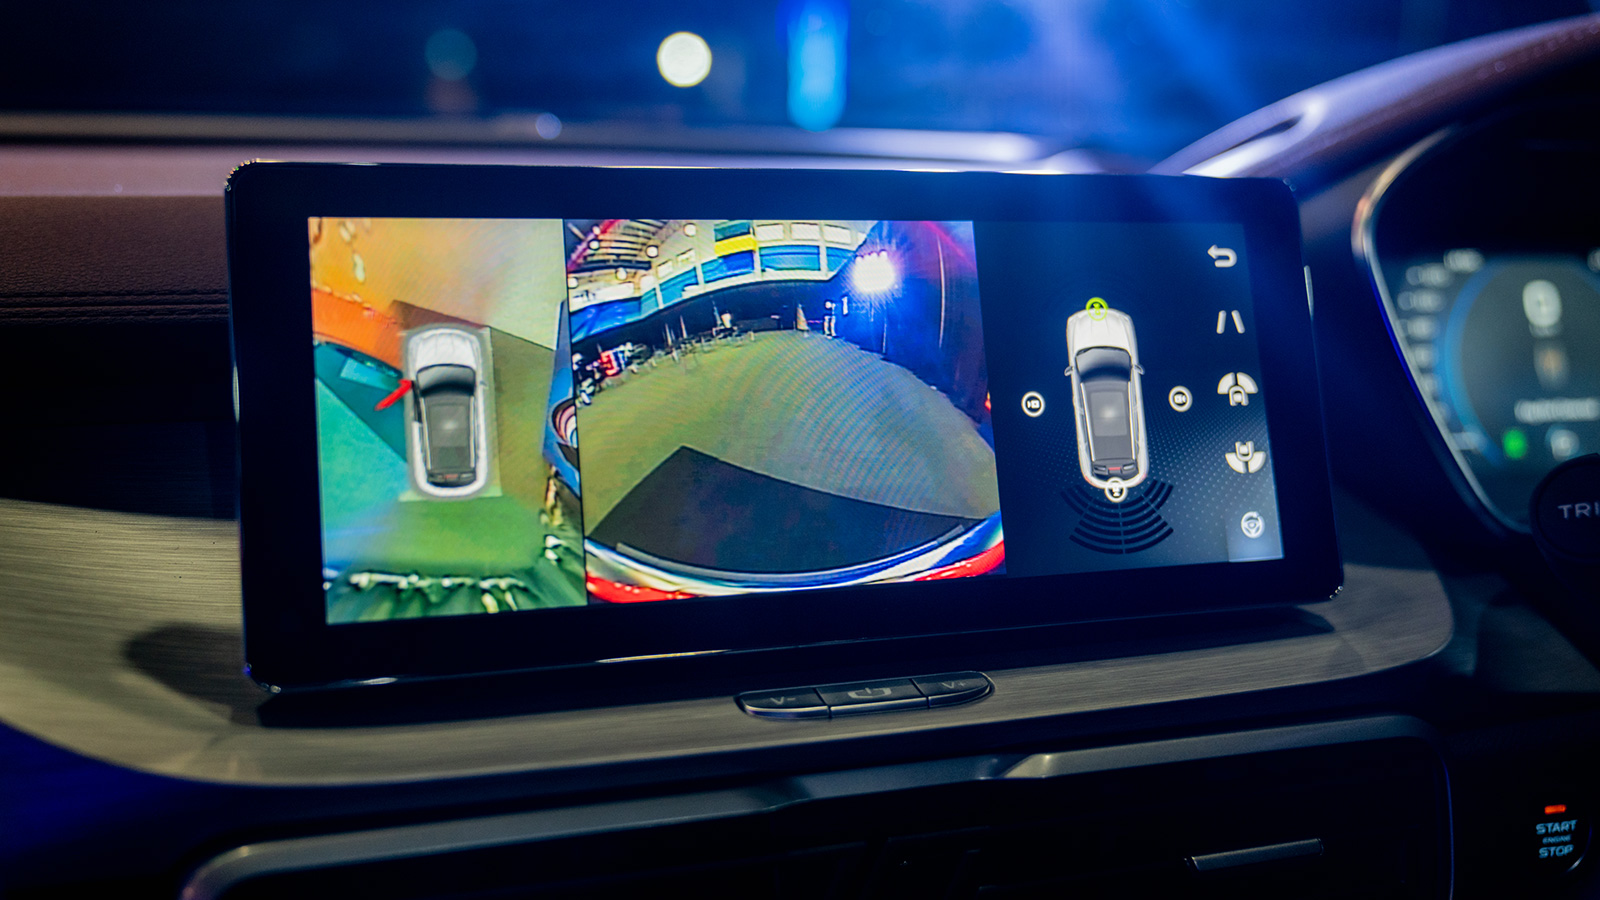 Proton said all X50 model's entertainment system will run on GKUI 19, powered by an E01 Quad-Core CPU and support eSIM. — Picture by SoyaCincau